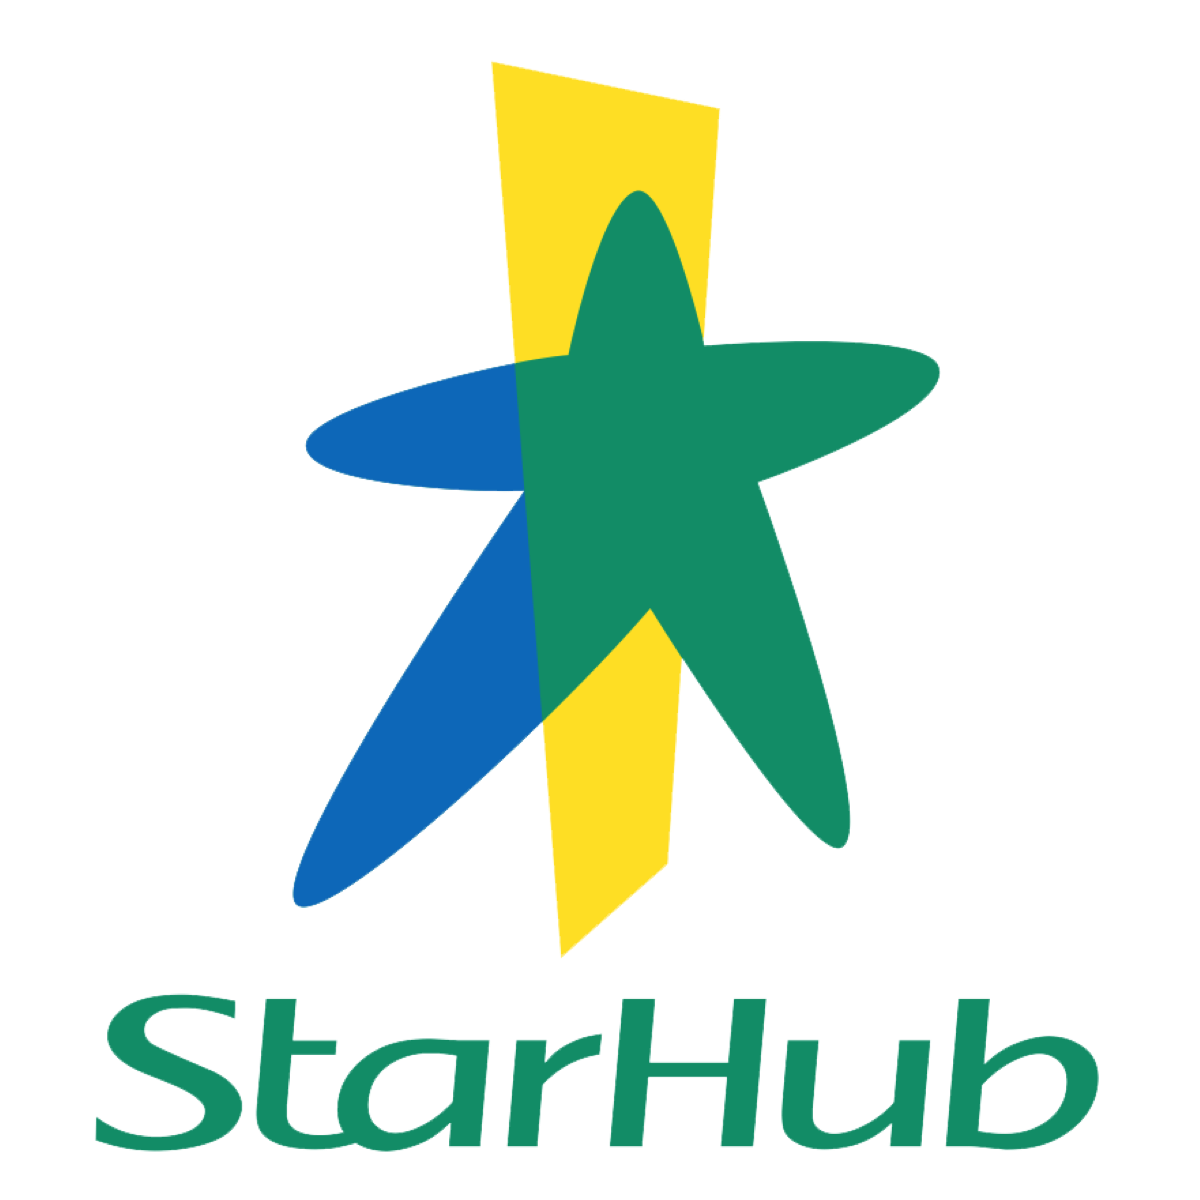 StarHub - DBS Vickers 2018-06-26: Not Attractive Yet Despite Big Correction